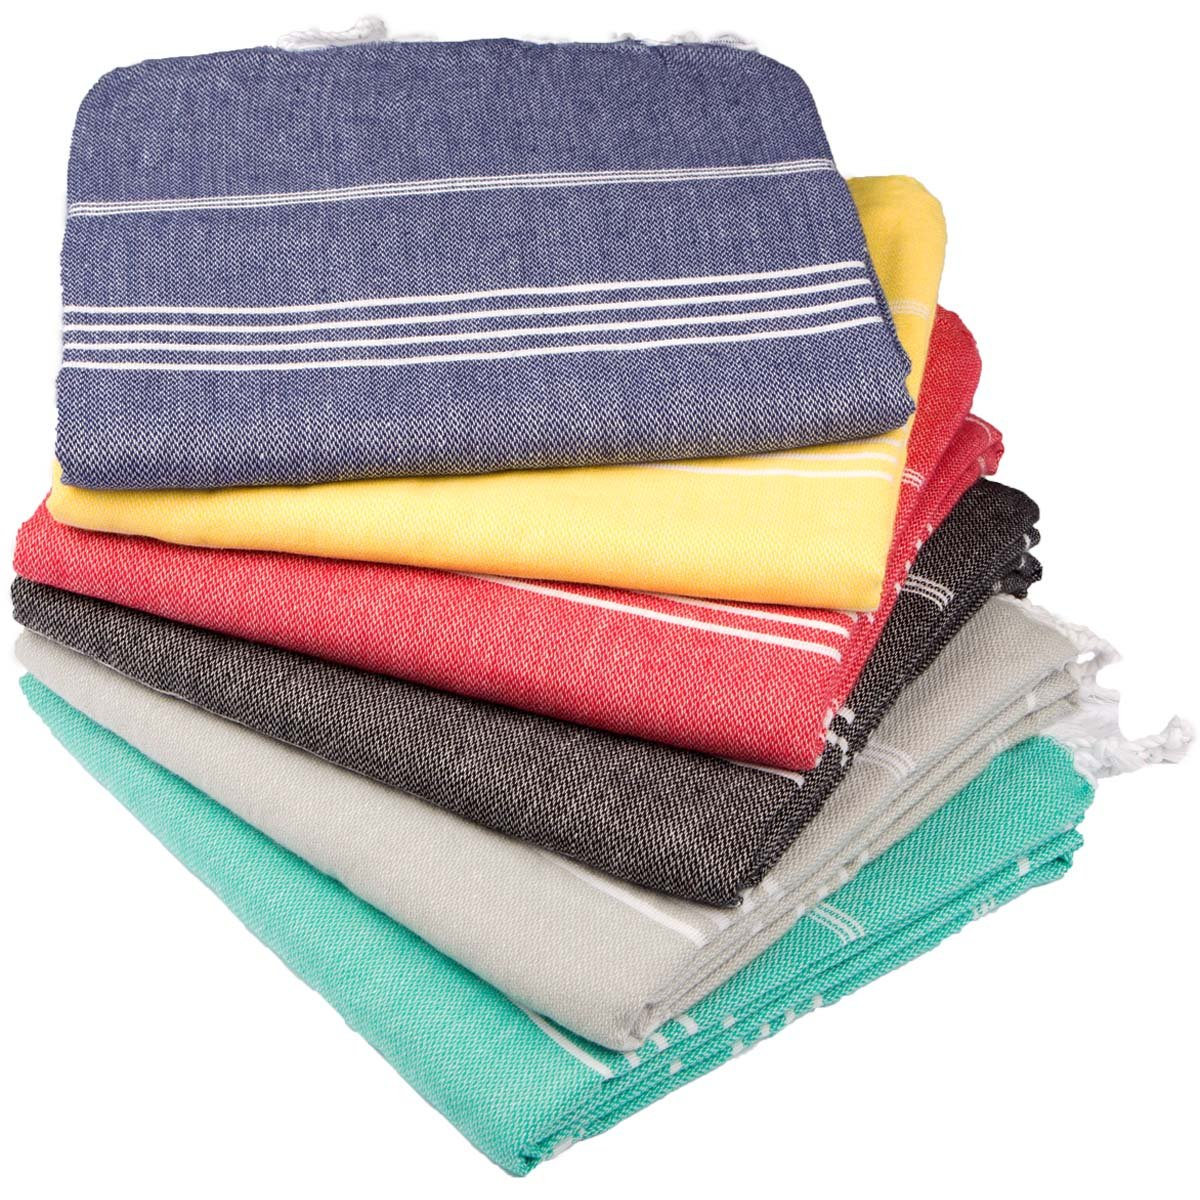 Towel Set 6 Pieces Variety - Classic Turkish Peshtemal Towel 100% Cotton 39 X 70'' Stylish Bath Beach Spa and Fitness Towel